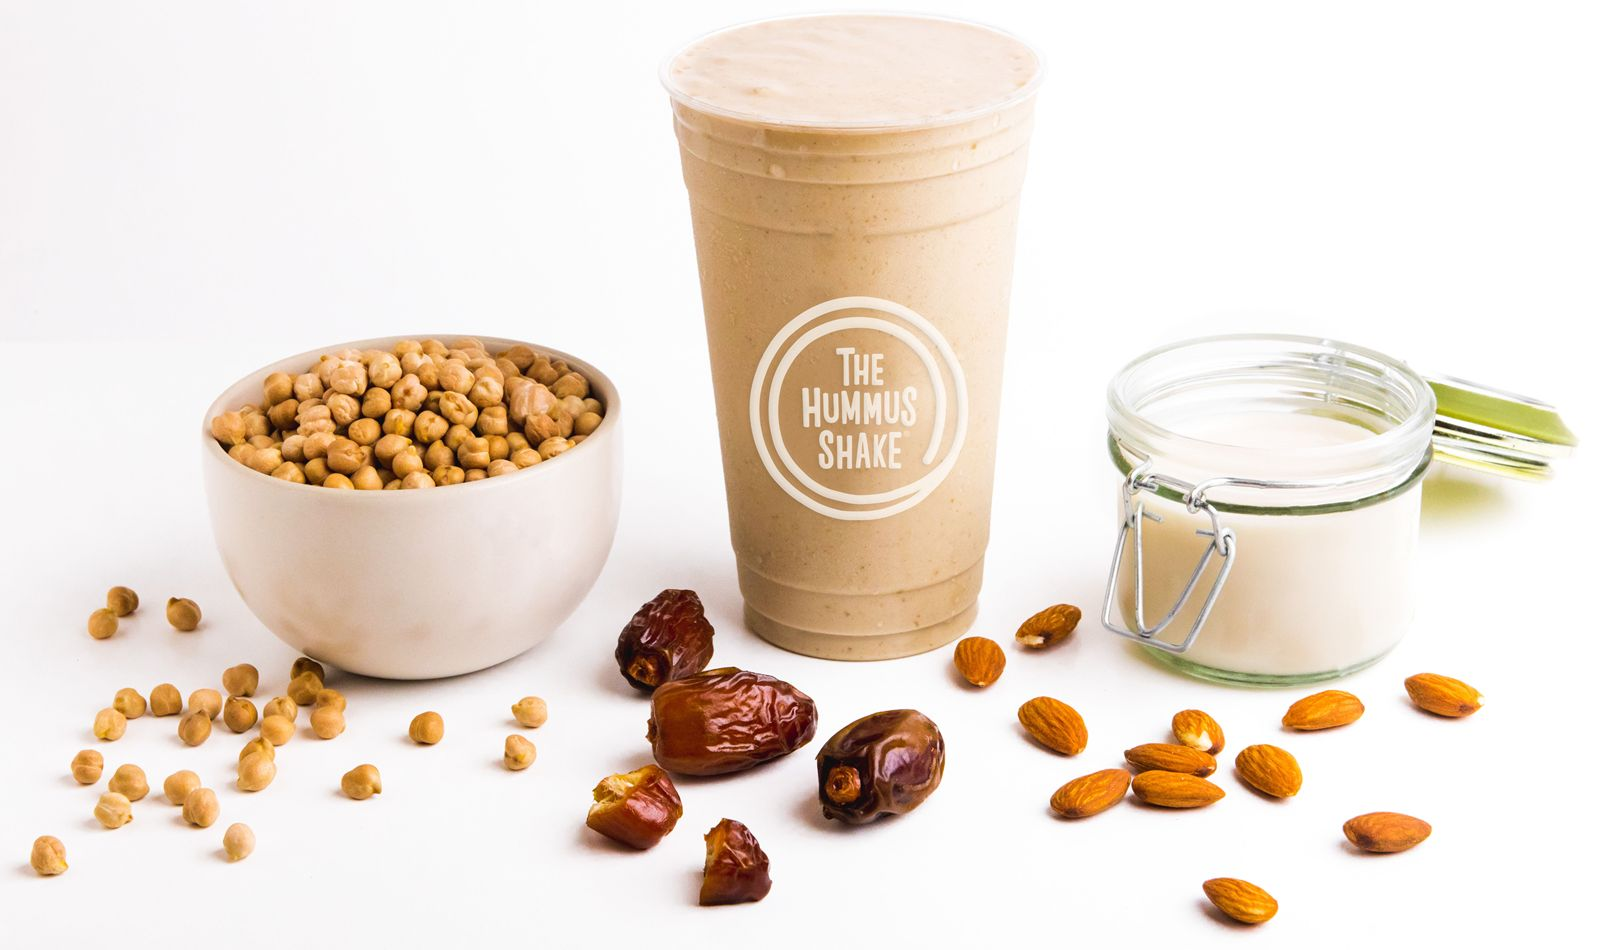 The Hummus & Pita Co. is expanding its healthy dessert portfolio with the introduction of the world's first Hummus Shake, which is set to launch at all Hummus & Pita Co. locations nationwide on National Hummus Day (Sunday, May 13).